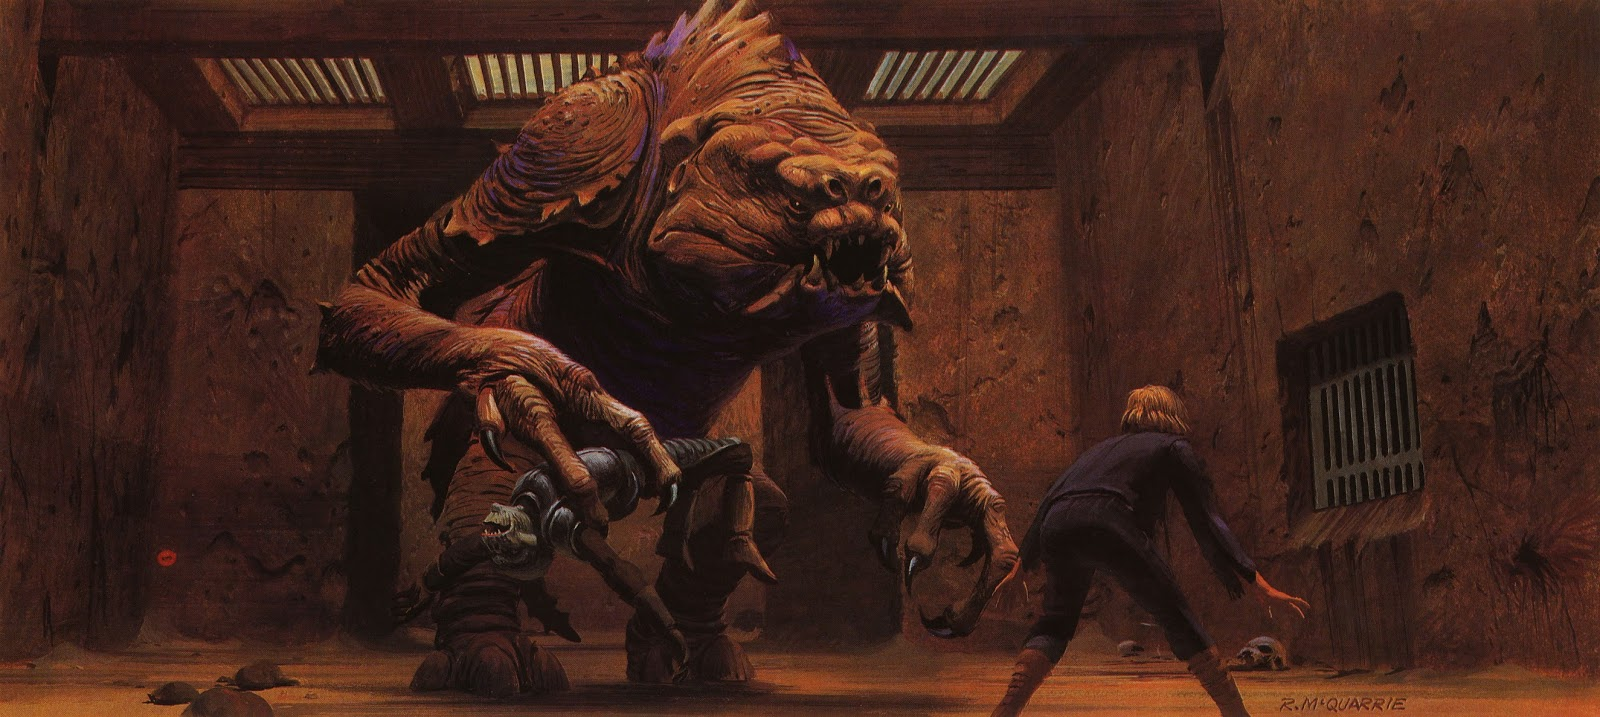 Ralph McQuarrie Star Wars Concepts 51-55 … Jabba and other creatures in his palace